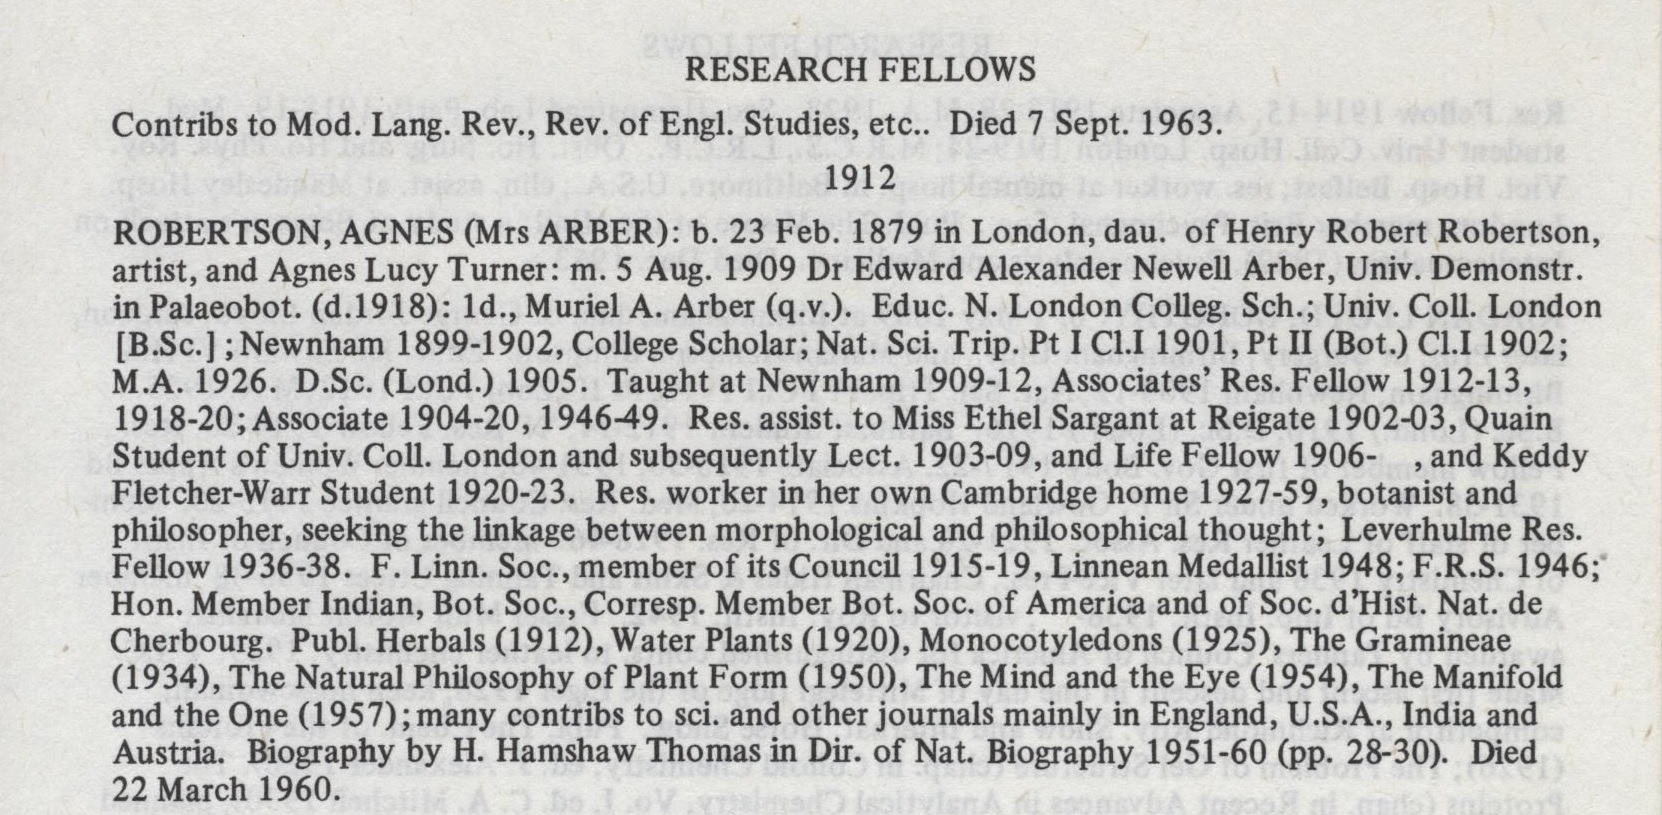 Agnes Arber's entry from the printed College register of Newnham College, Cambridge (Image: Used with permission from Newnham College, University of Cambridge)